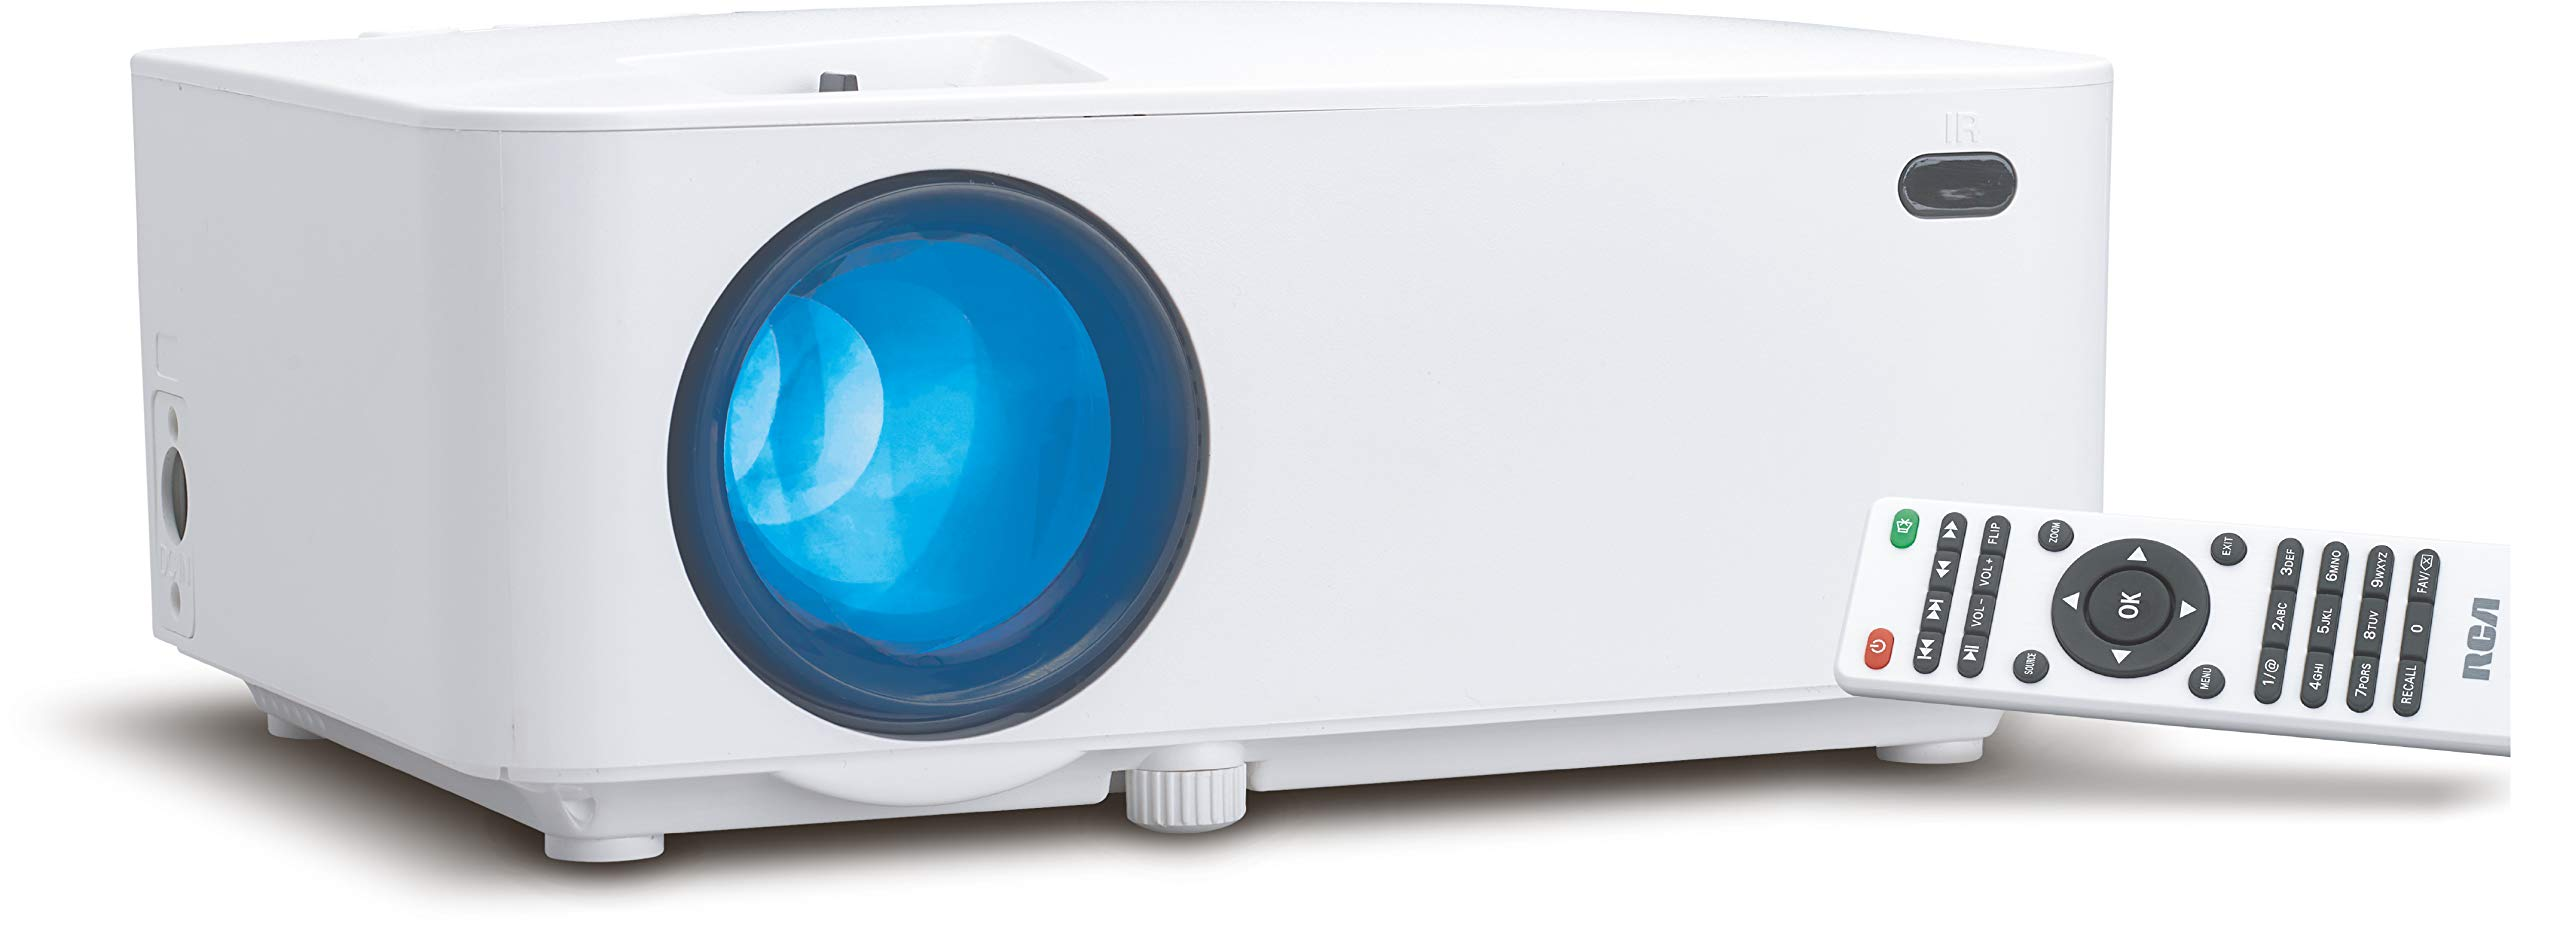 RCA Projectors, Video, Office, Presentations, Screen, HD, 1080p, Android, Wi-Fi (Built-in Bluetooth) by RCA